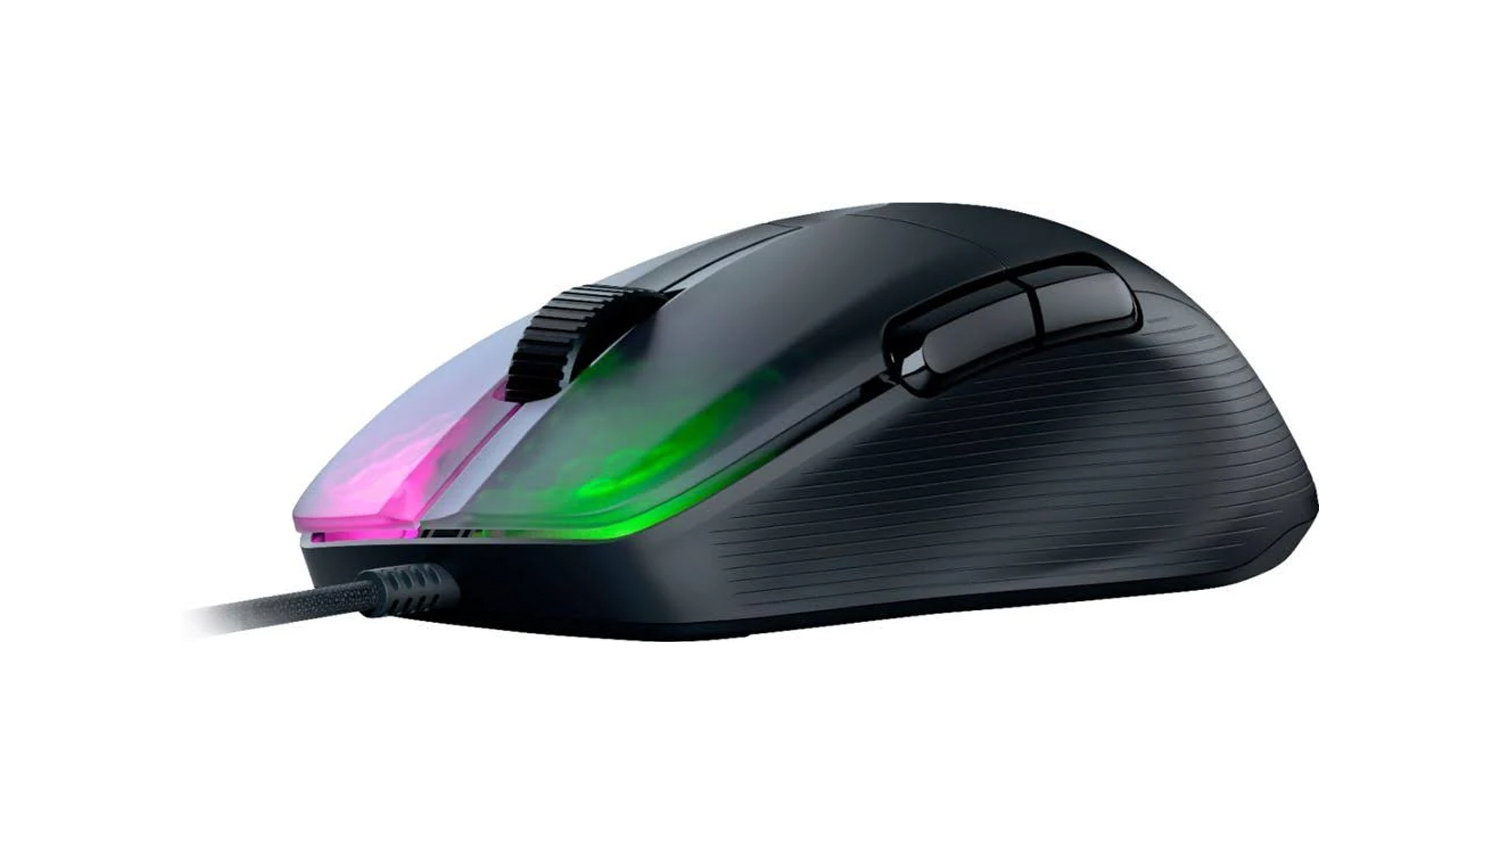 The Roccat Kone Pro is light as a feather yet also as fast as lighting